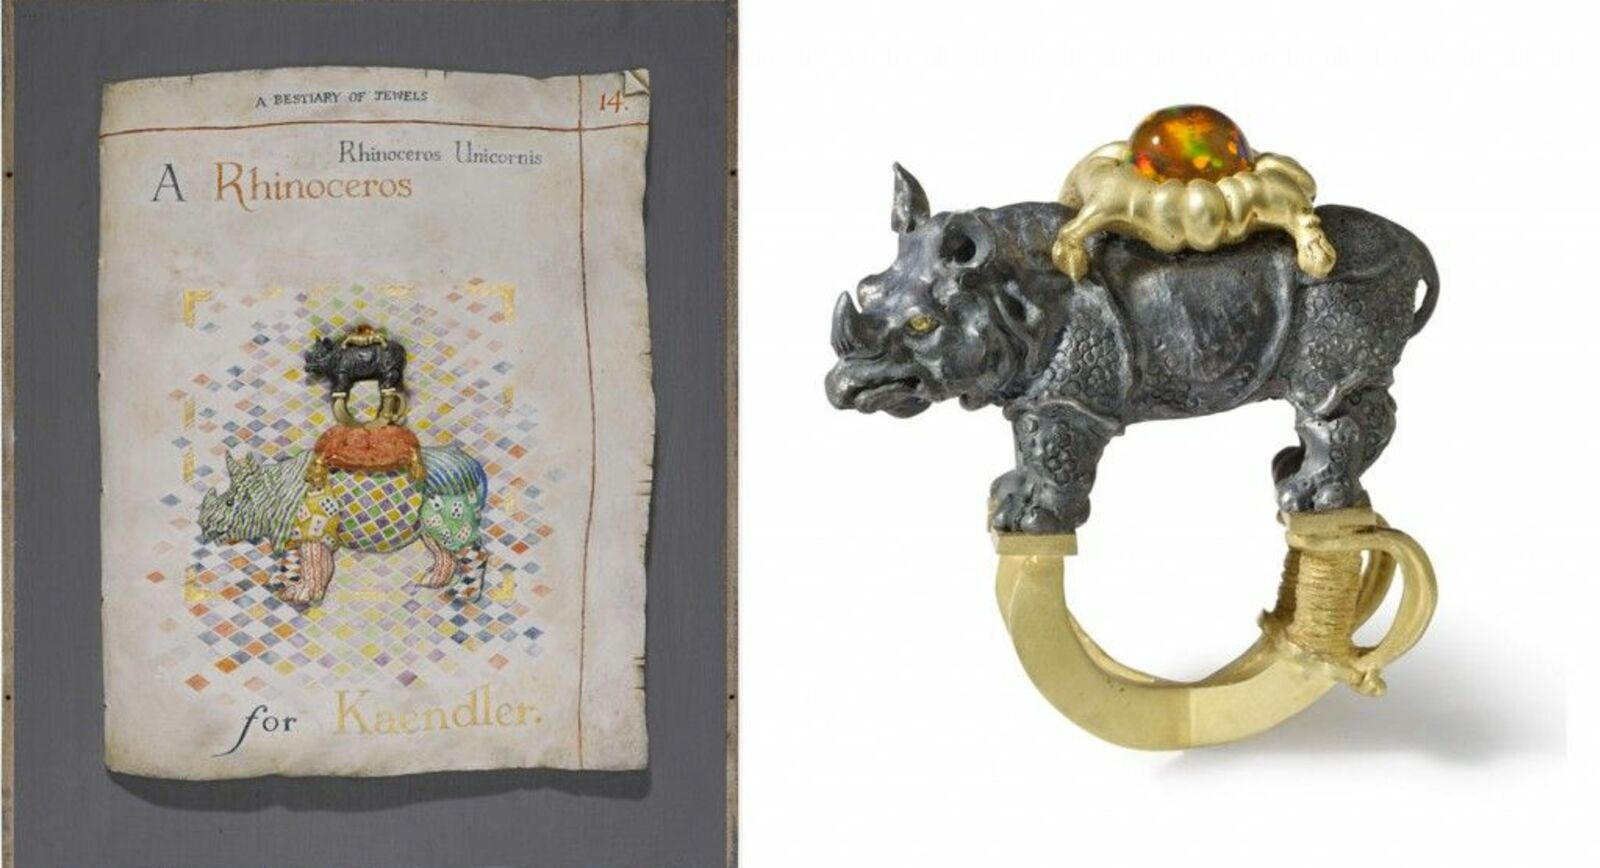 Kevin Coates' A Bestiary of Jewels' at the Ashmolean Museum